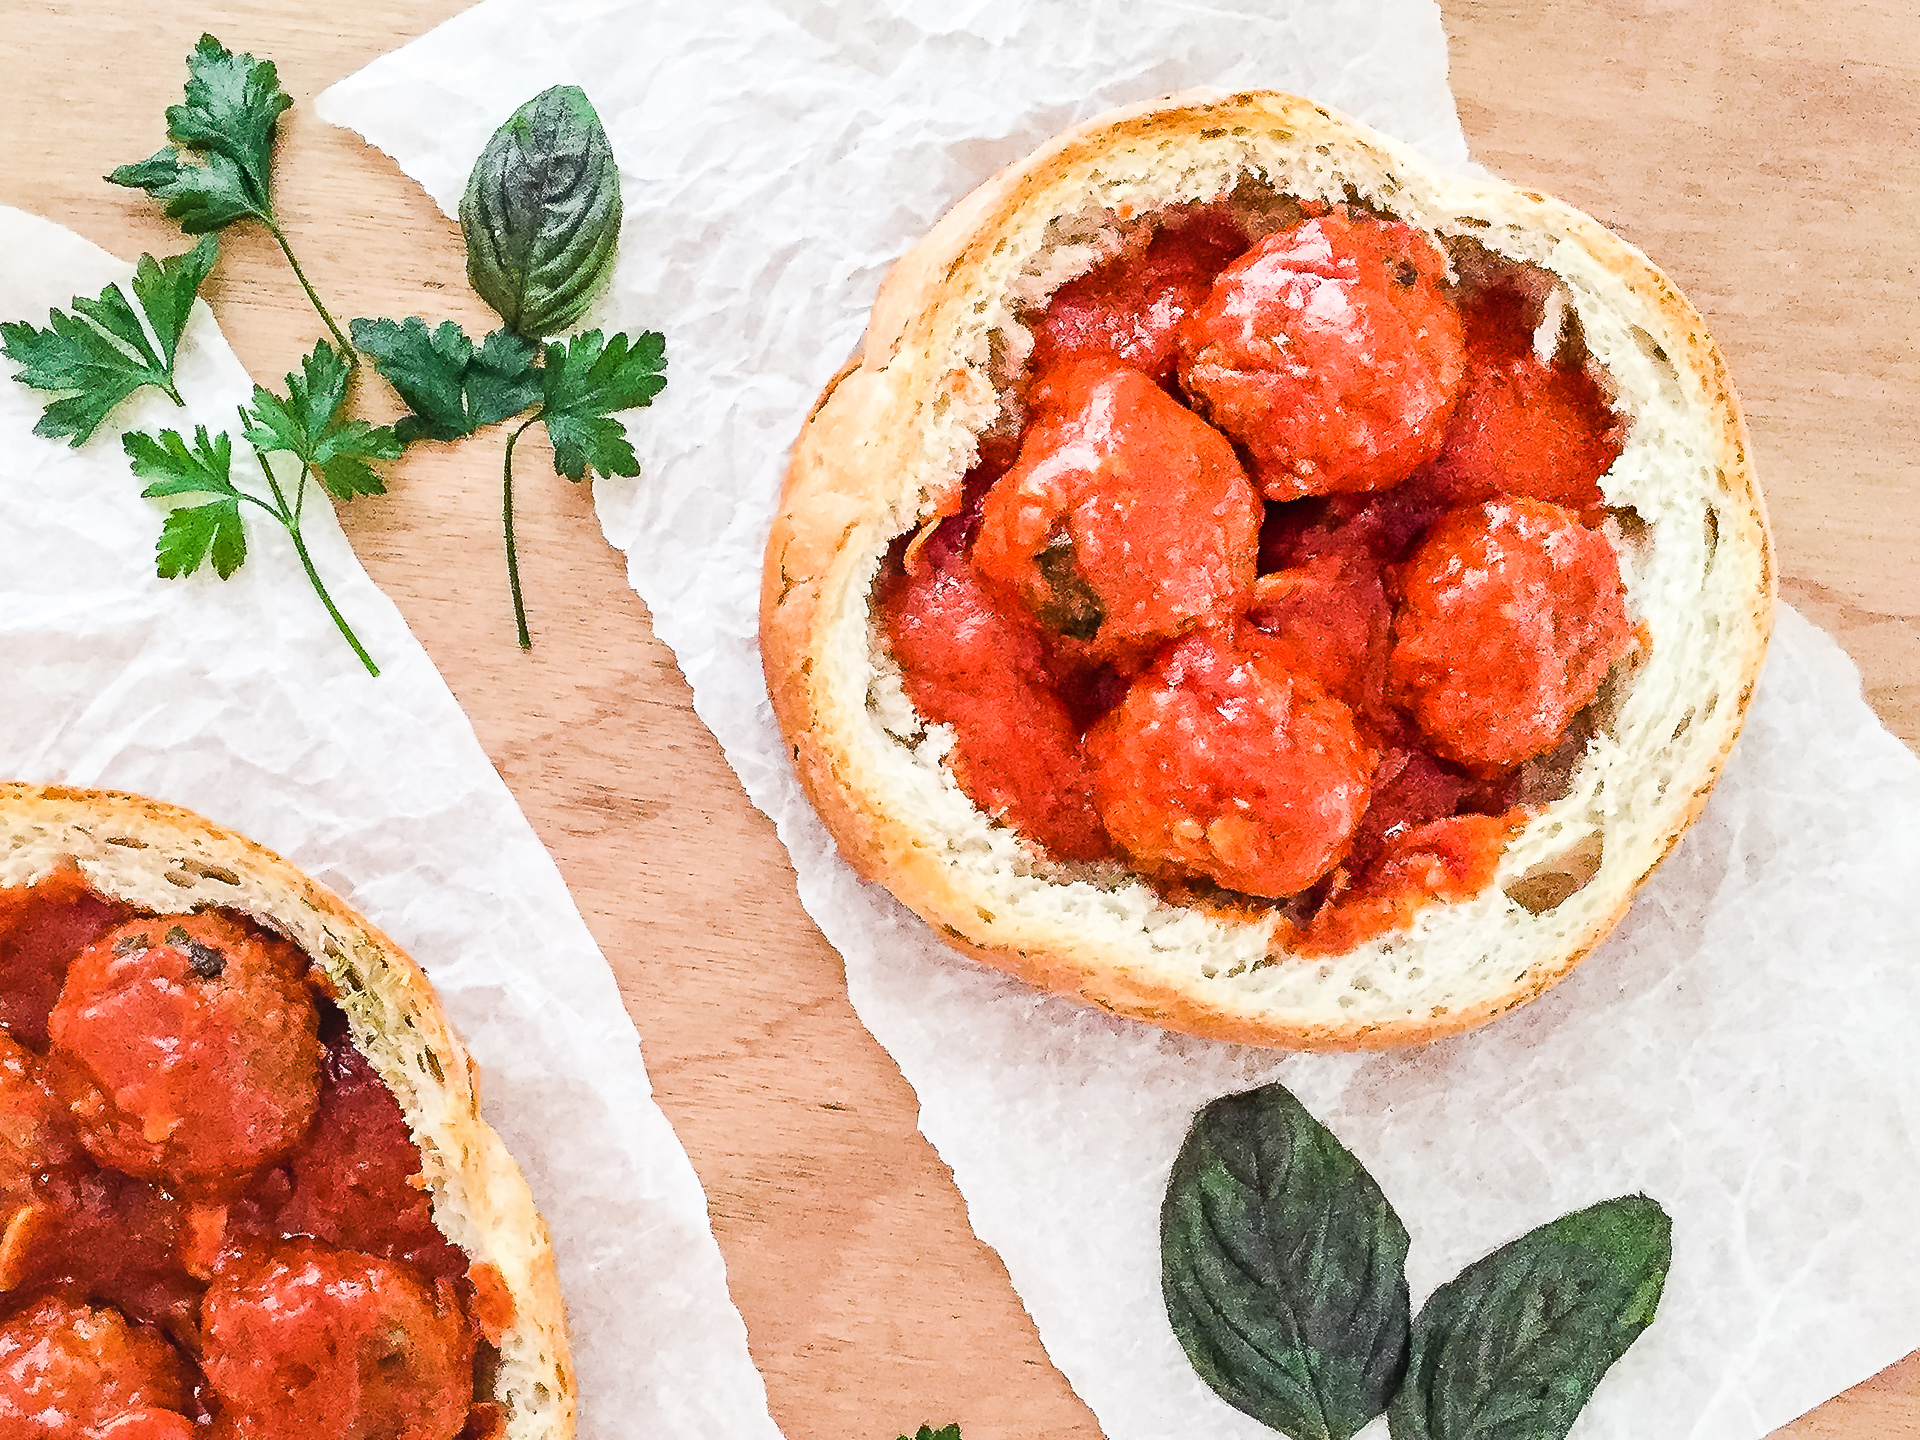 Meatballs with Tomato Sauce in a Bread Bowl Preview